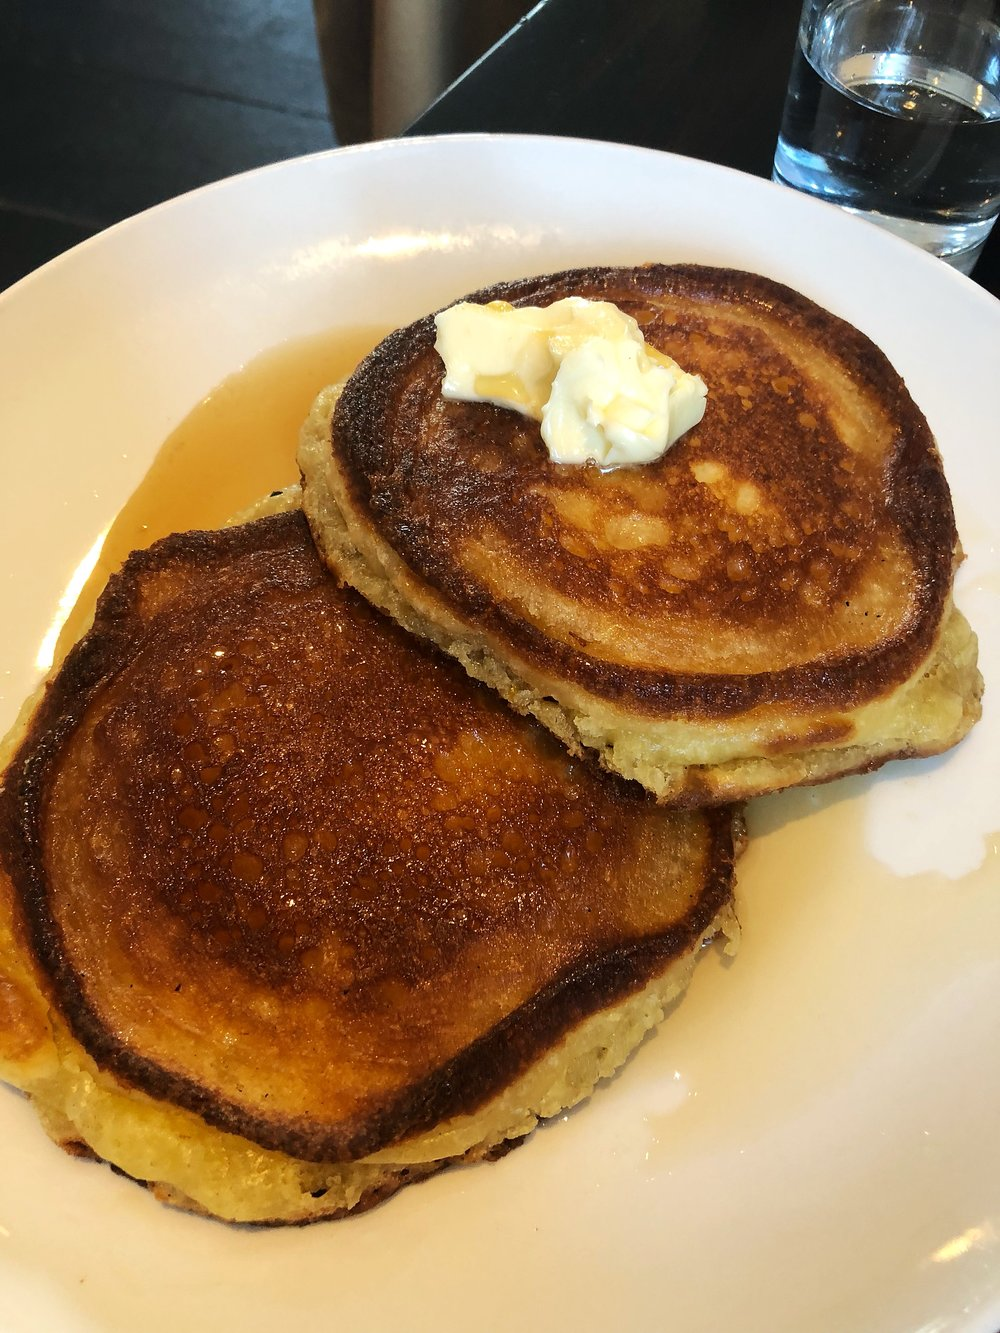 Cast iron skillet pancakes, perfectly griddled with a fluffy interior